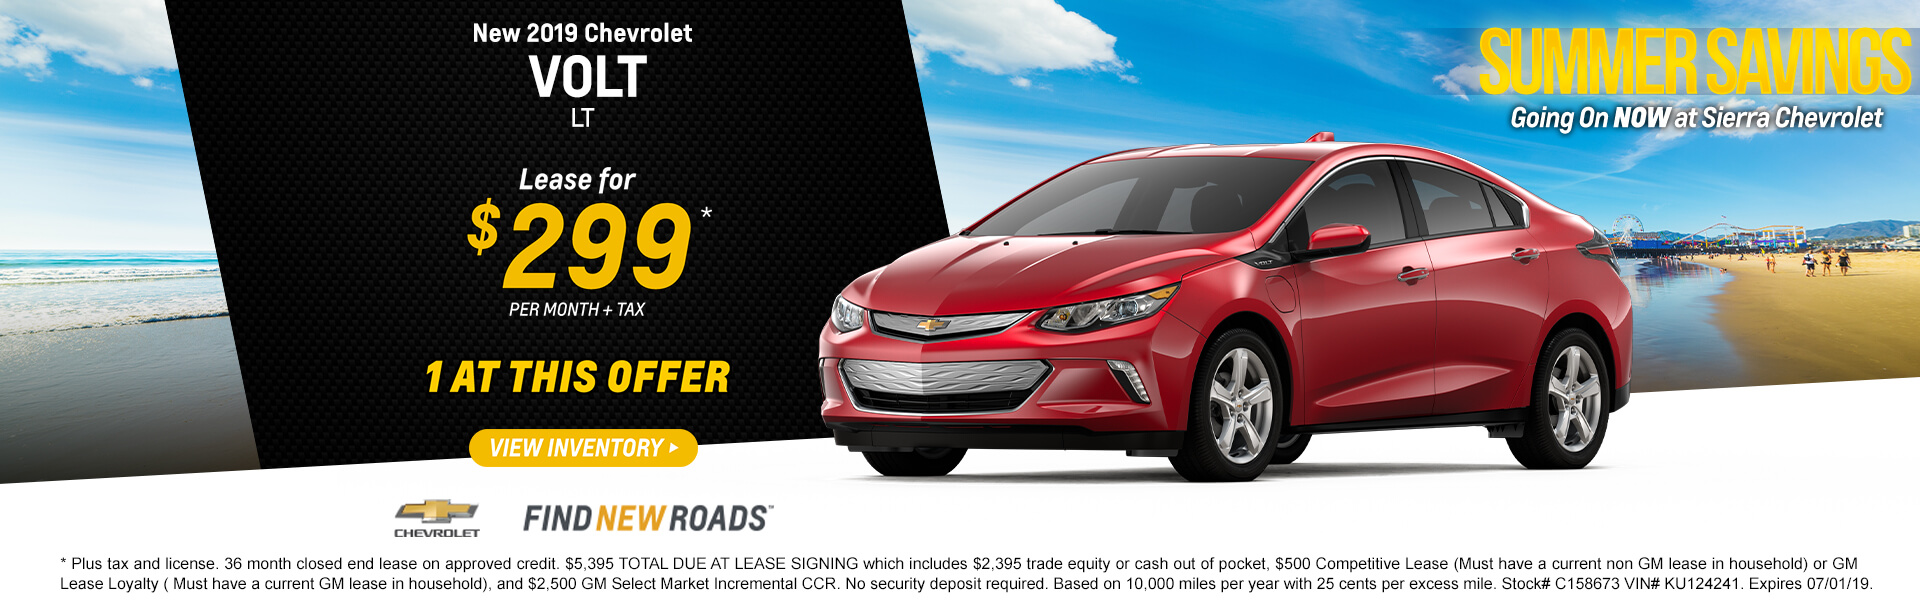 2019 Chevrolet Volt LT  Lease for $299* + tax per month  1 AT THIS OFFER  * Plus tax and license. 36 month closed end lease on approved credit. $5,395 TOTAL DUE AT LEASE SIGNING which includes $2,395 trade equity or cash out of pocket, $500 Competitive Lease (Must have a current non GM lease in household) or GM Lease Loyalty ( Must have a current GM lease in household), and $2,500 GM Select Market Incremental CCR. No security deposit required. Based on 10,000 miles per year with 25 cents per excess mile. Stock# C158673 VIN# KU124241. Expires 07/01/19.